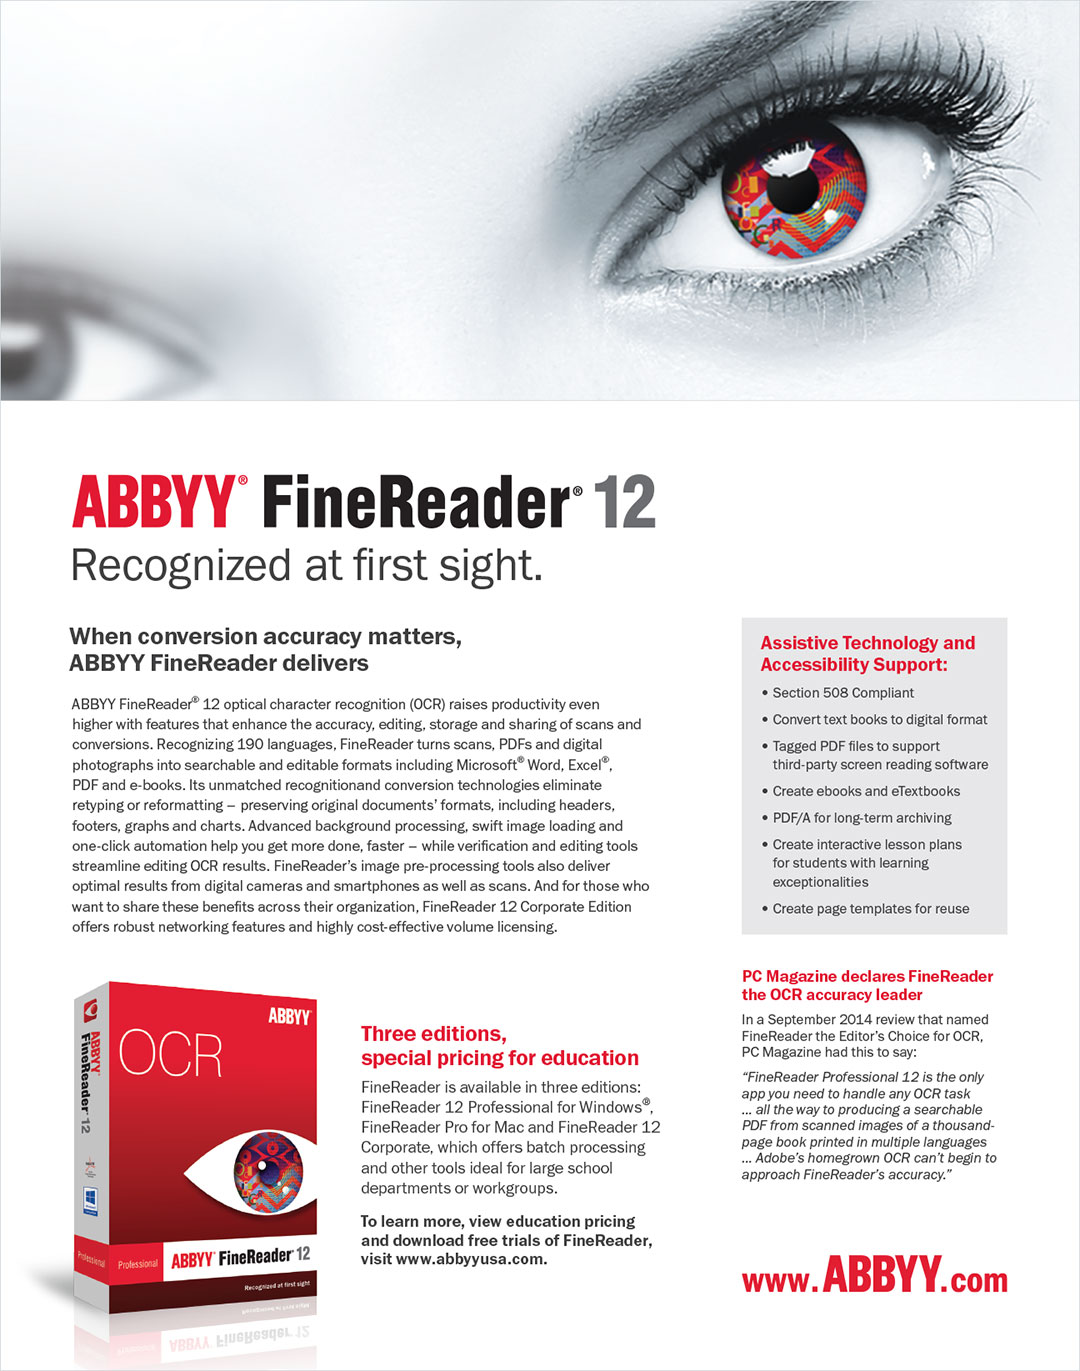 ABBY FineReader Ad Design LunaGraphica